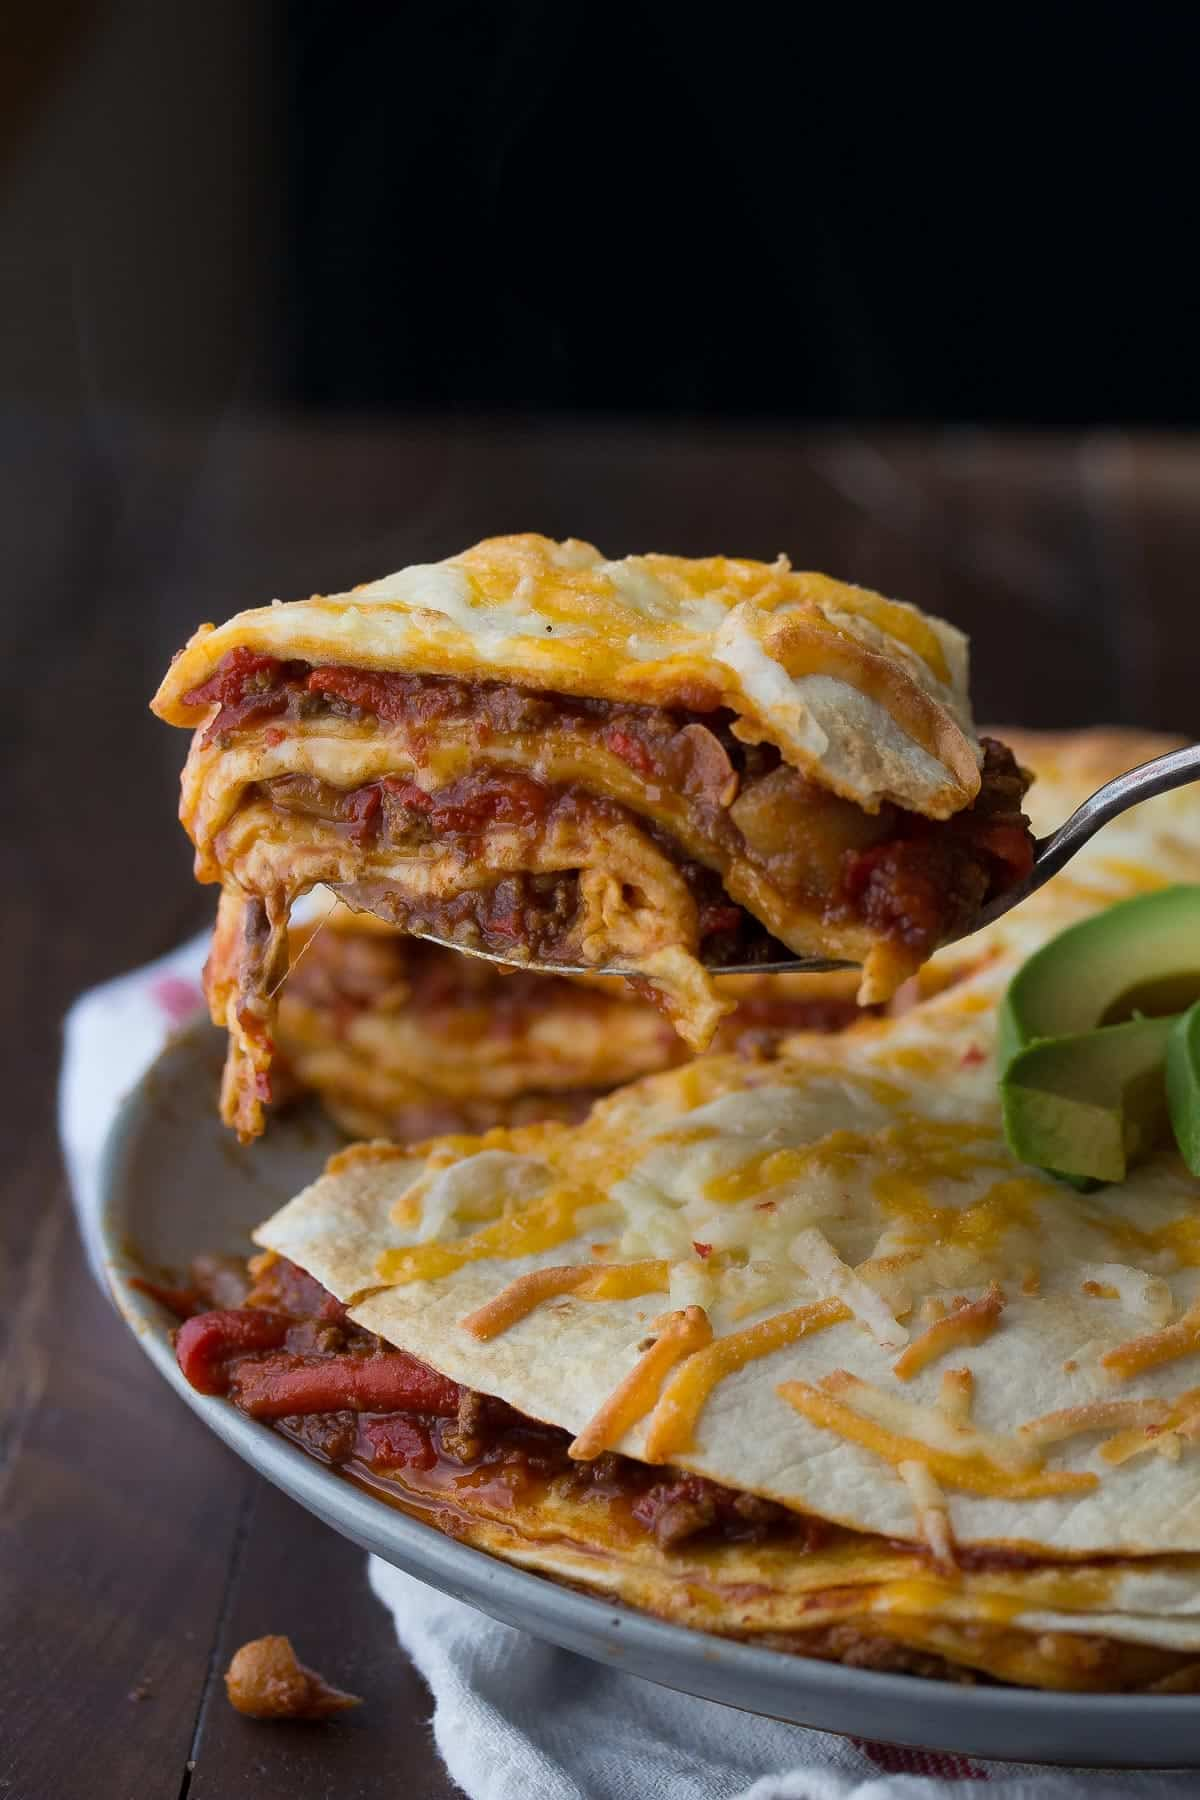 Leftover chili tortilla stacks